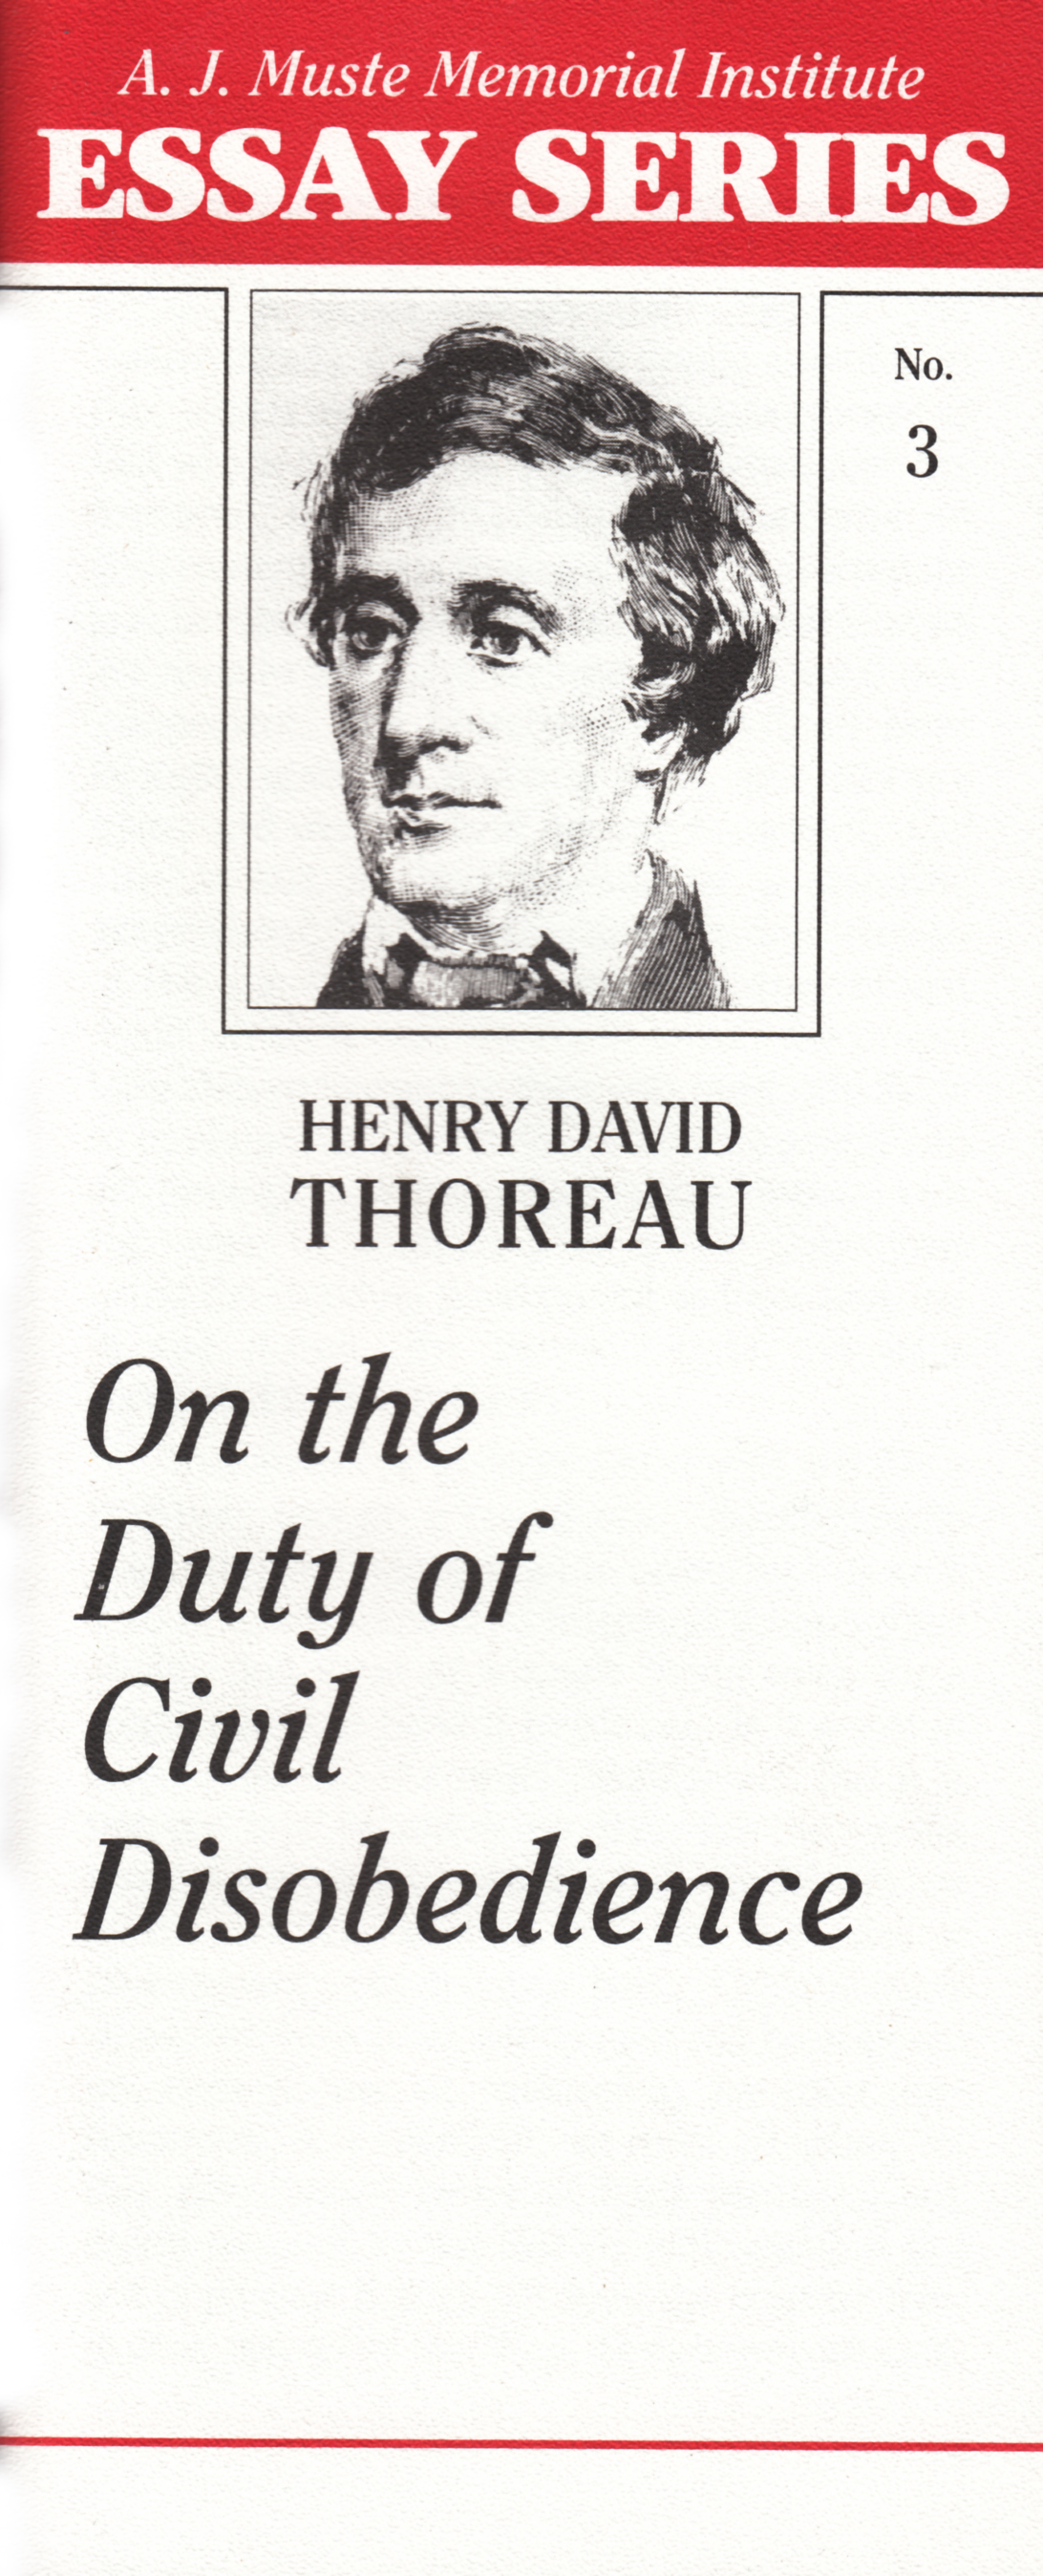 essay of civil disobedience thoreau Essay on civil disobedience 1 essay on civil disobedience henry david thoreau henry david thoreau (1817-1862) was a citizen of concord, massachusetts, where he lived.